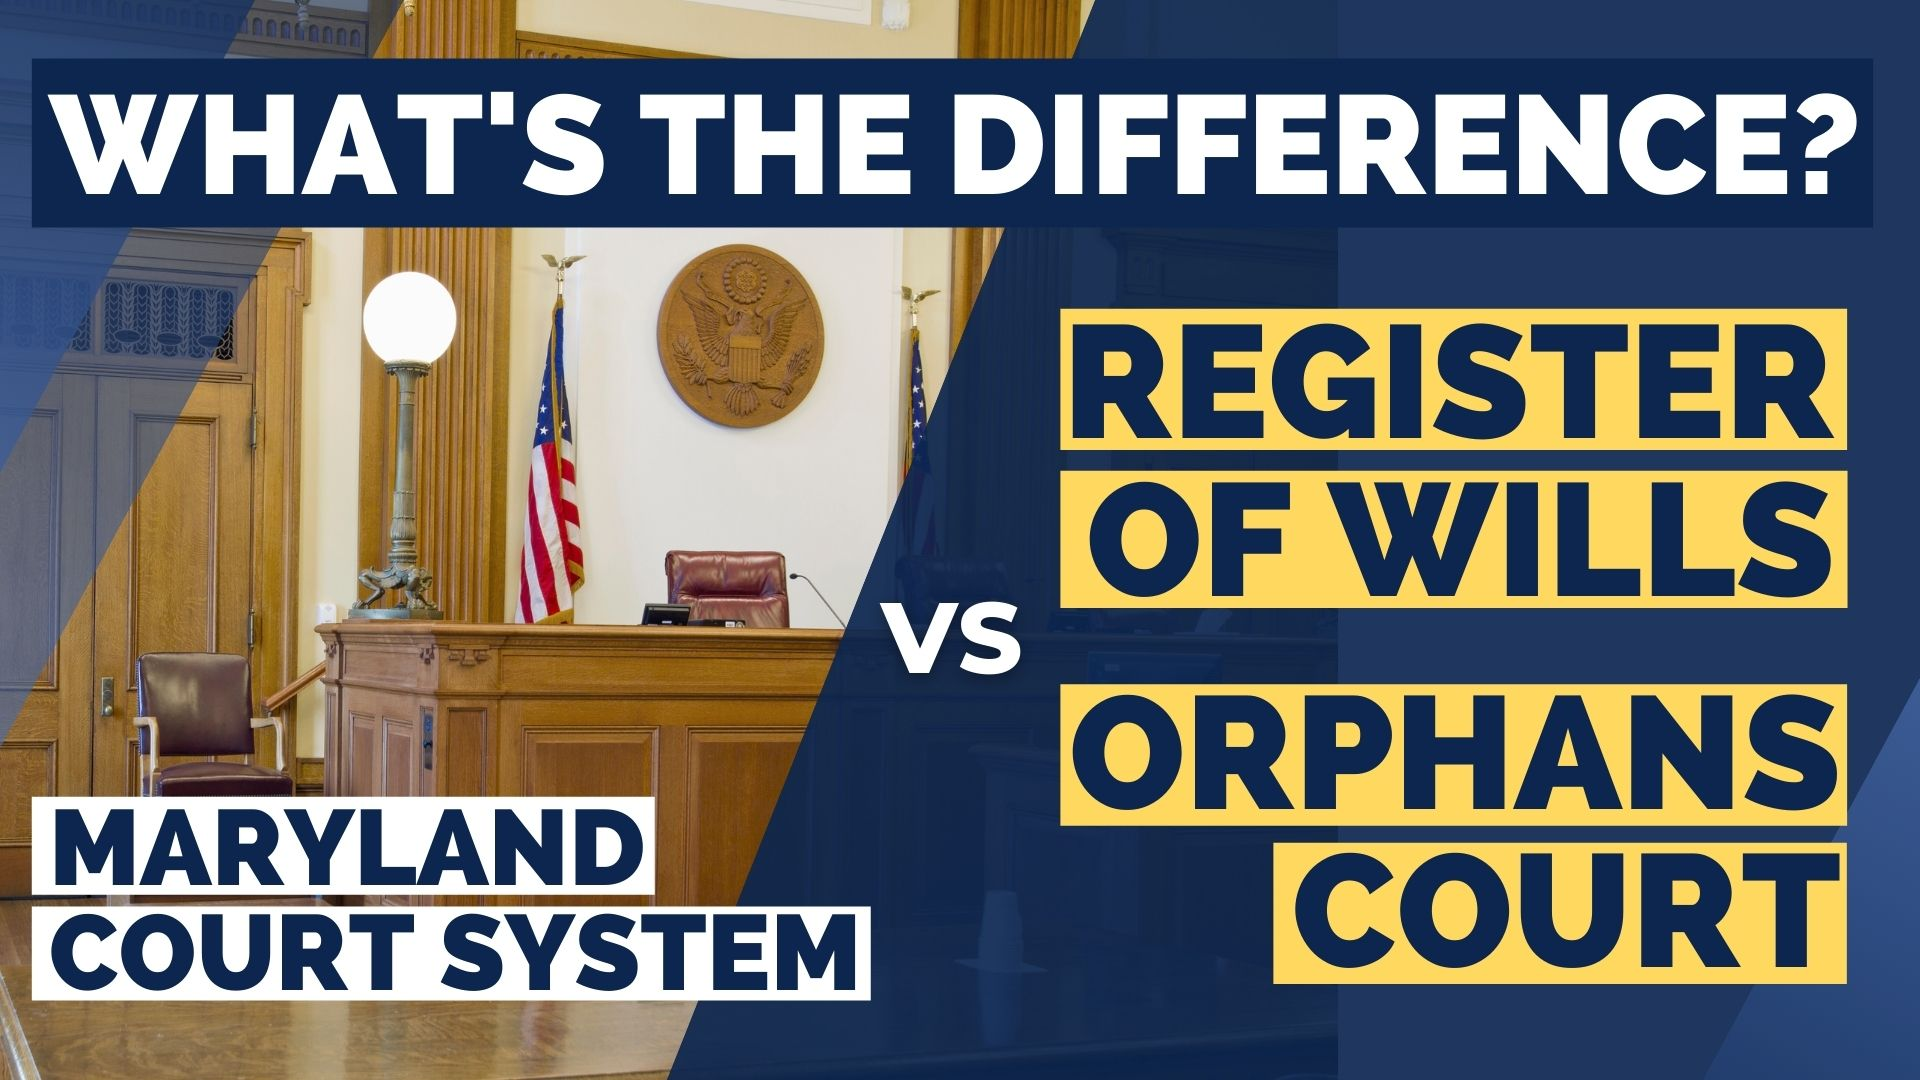 register of wills vs orphans court in maryland